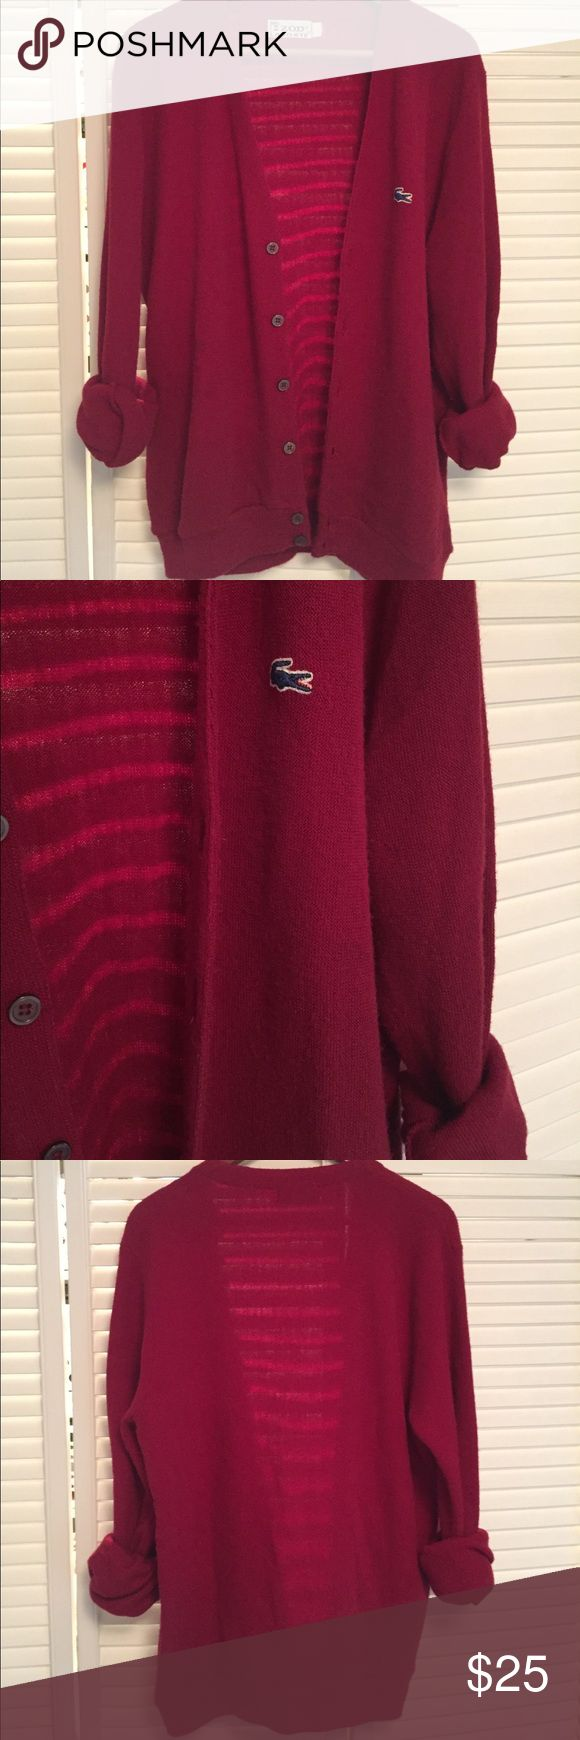 "Vintage Izod Lacoste Cardigan The coolest vintage cardigan sweater I've ever seen!  Izod Lacoste burgundy acrylic cardigan sweater, no flaws.  Men's large.  I'm a small and it fits me pretty oversized but it's so comfy!  29"" long, 20"" Shoulder to Shoulder. Lacoste Sweaters Cardigans"